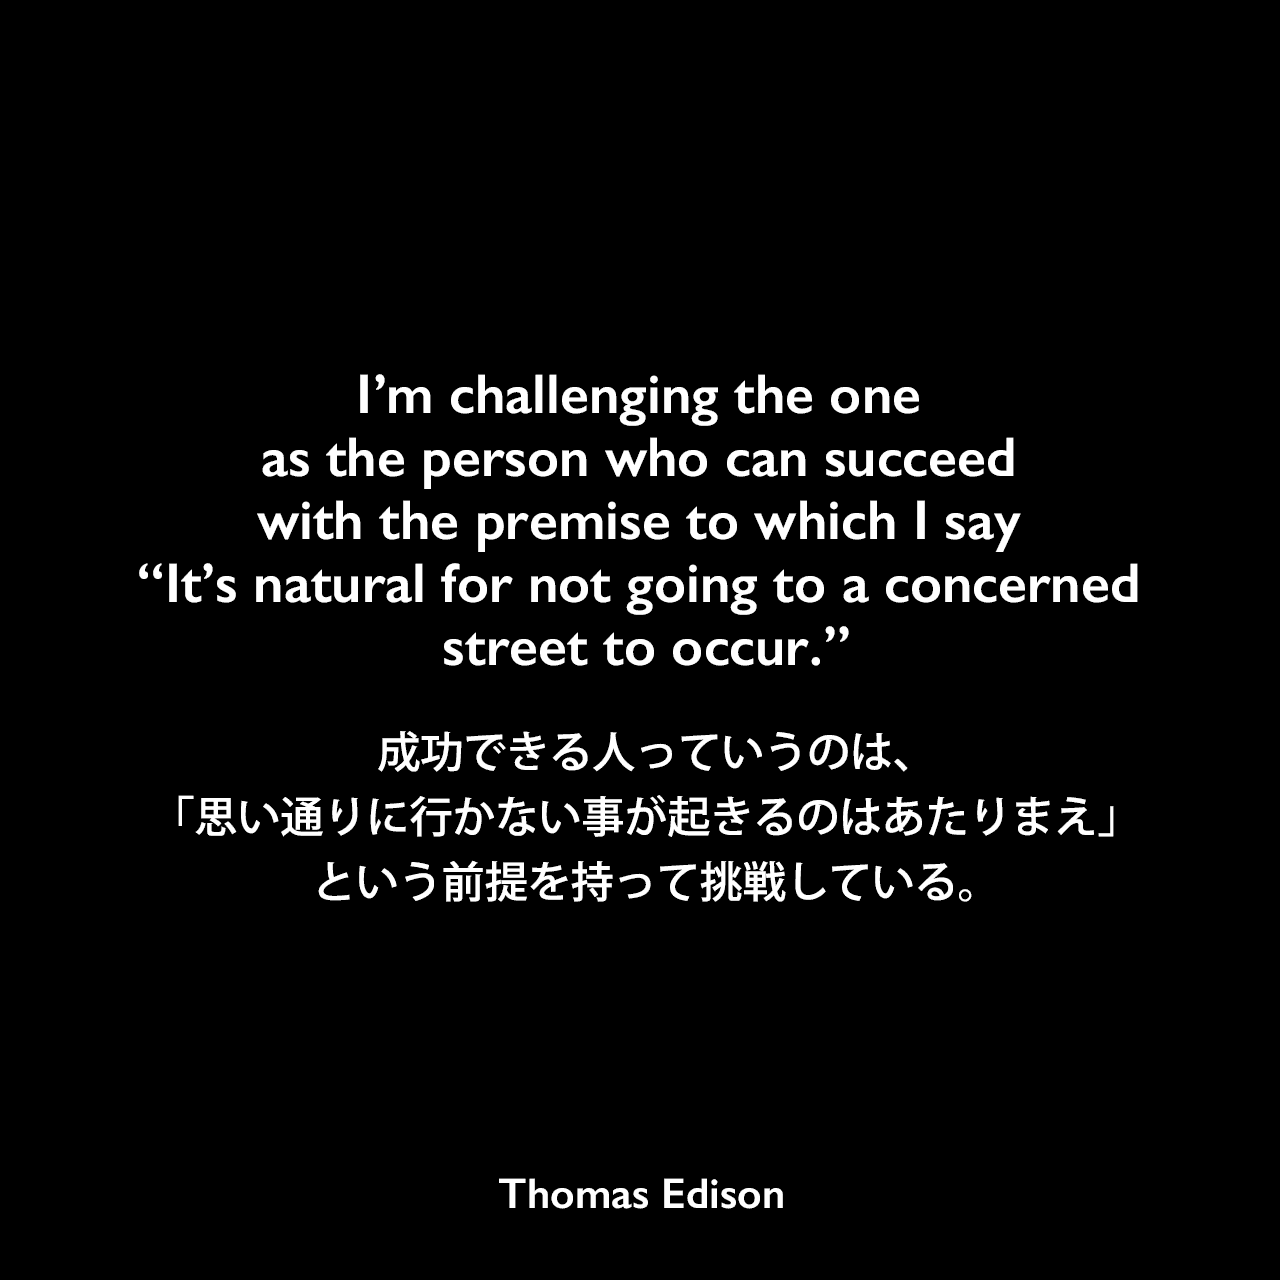 "I'm challenging the one as the person who can succeed with the premise to which I say ""It's natural for not going to a concerned street to occur.""成功できる人っていうのは、「思い通りに行かない事が起きるのはあたりまえ」という前提を持って挑戦している。Thomas Edison"